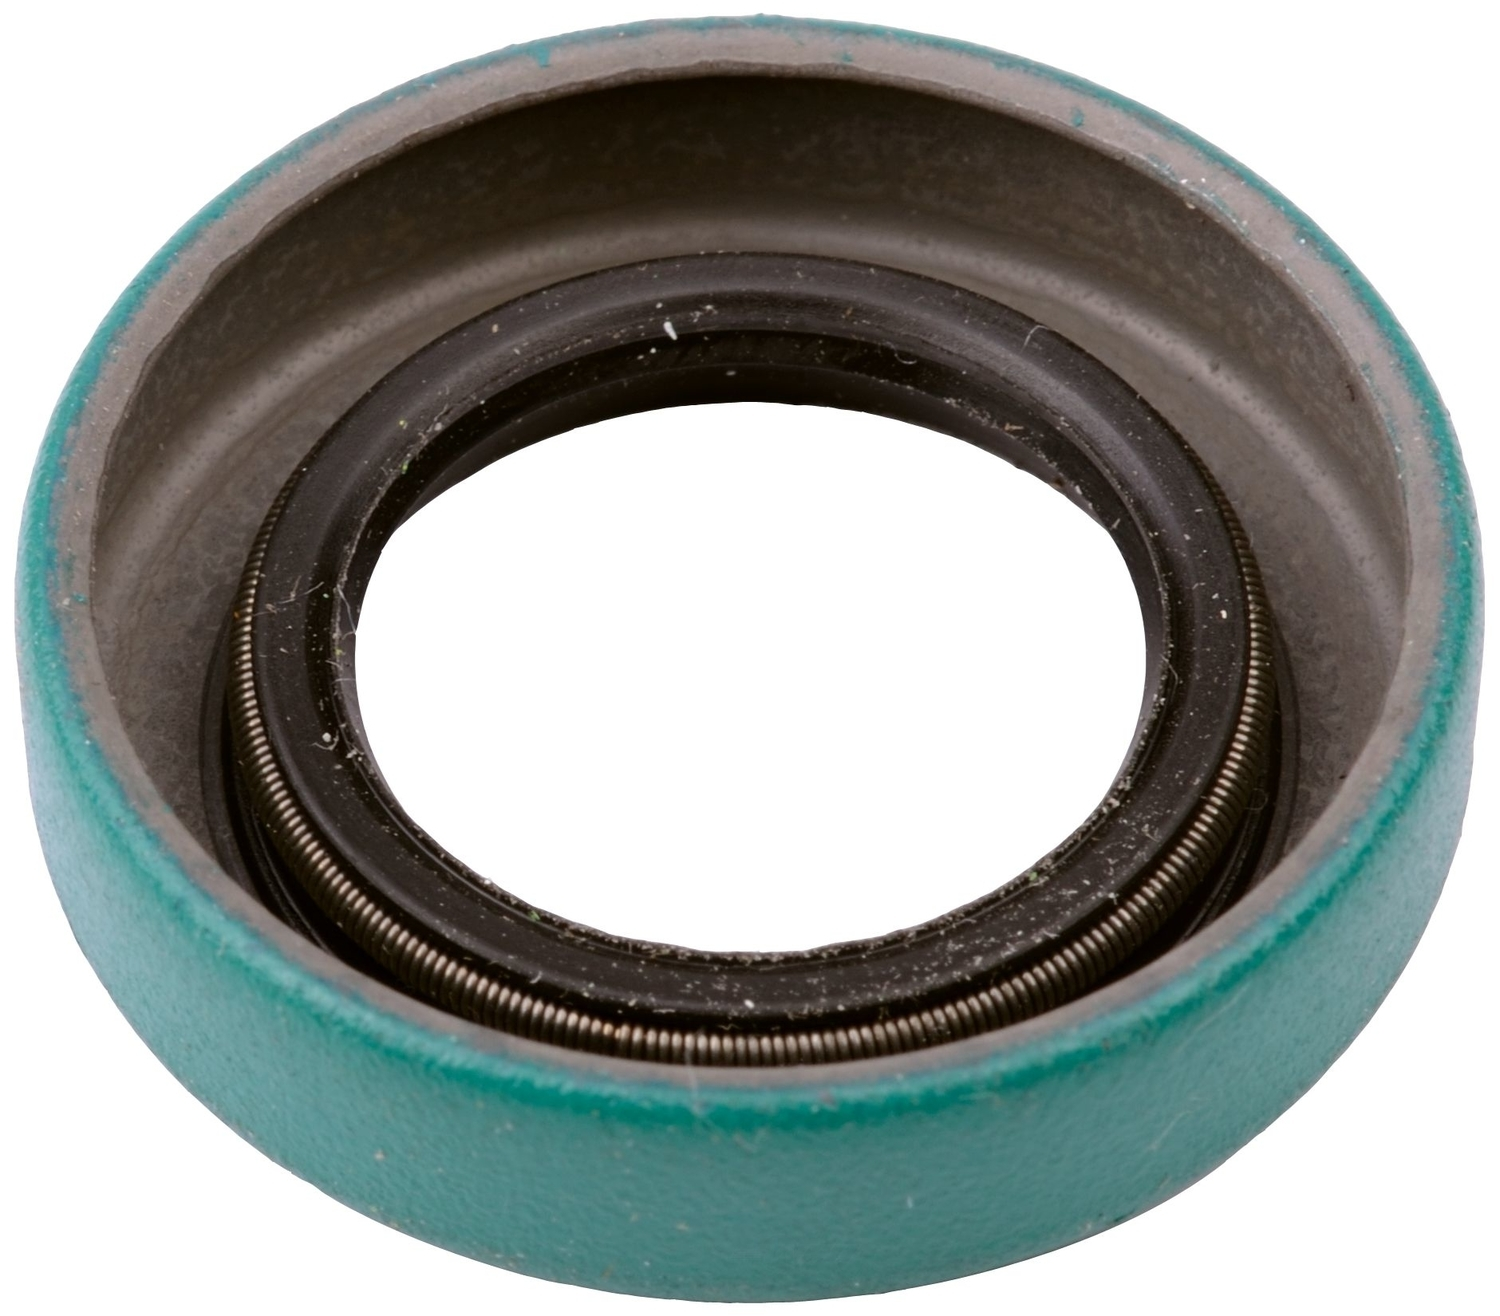 SKF (CHICAGO RAWHIDE) - Manual Trans Shift Shaft Seal - SKF 7000